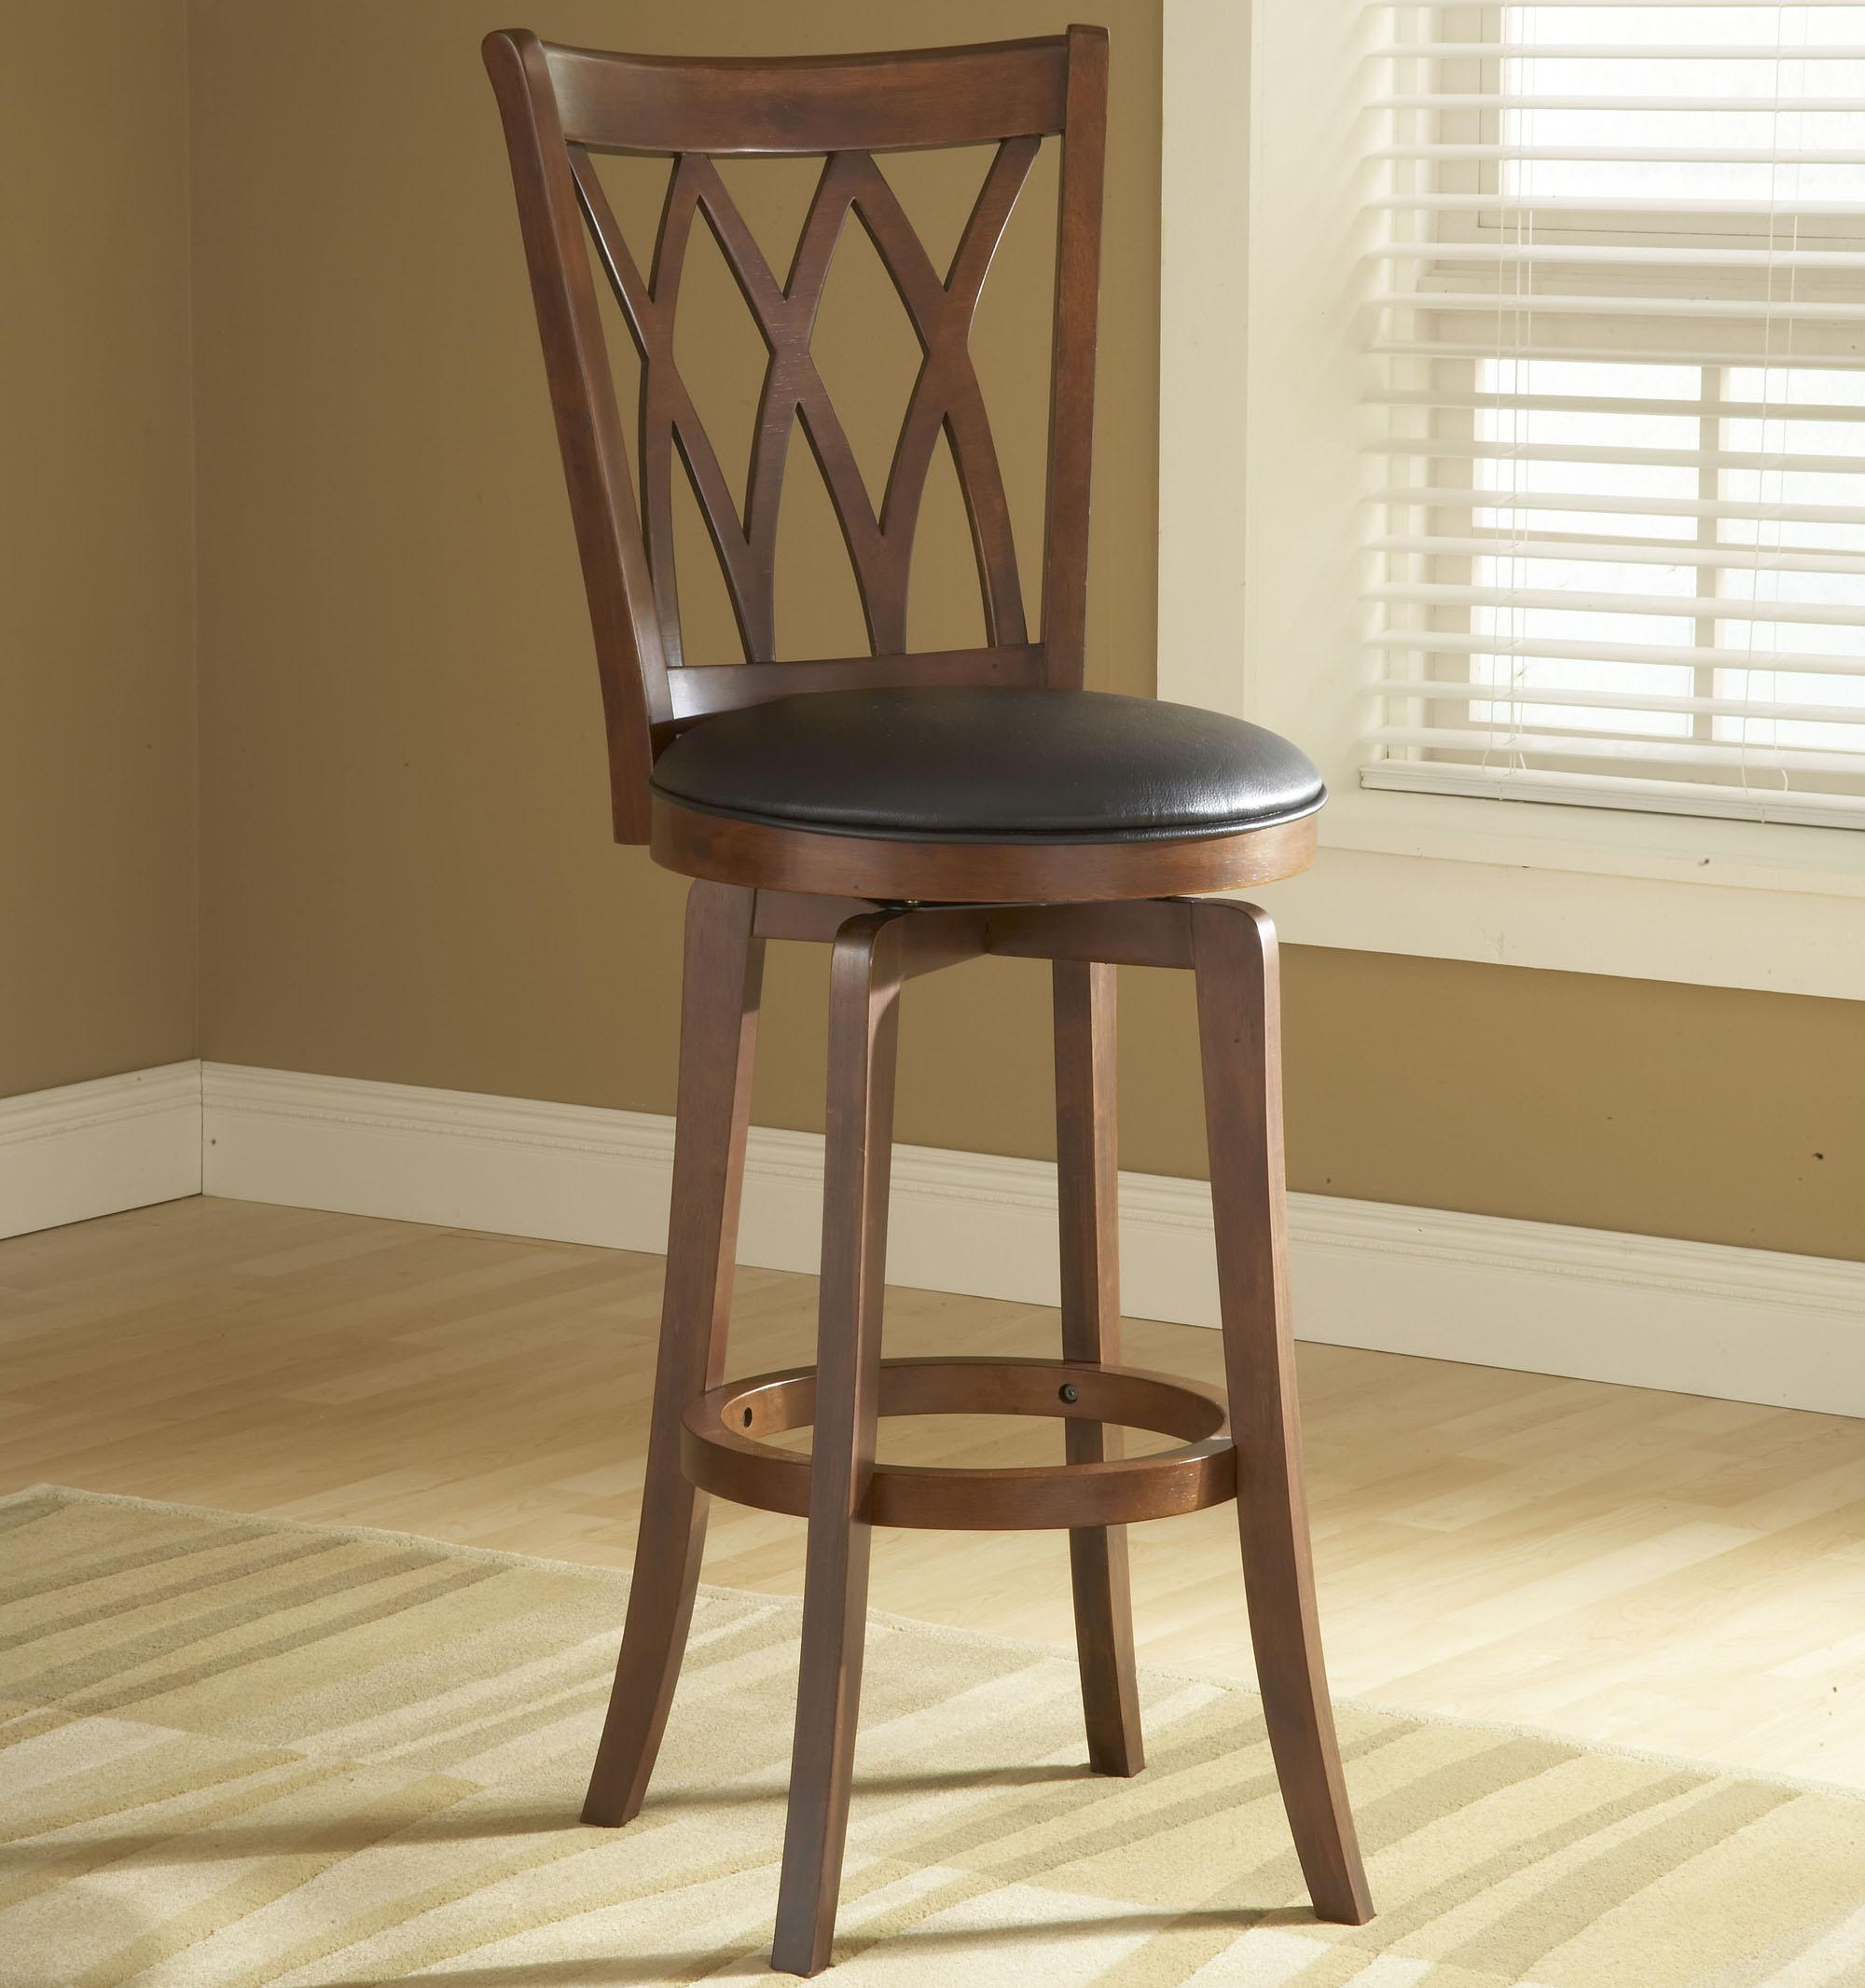 Wood Stools 24quot Counter Height Mansfield Swivel Stool by  : products2Fhillsdale2Fcolor2Fwood20stools4975 828 b from wolffurniture.com size 2000 x 2132 jpeg 279kB